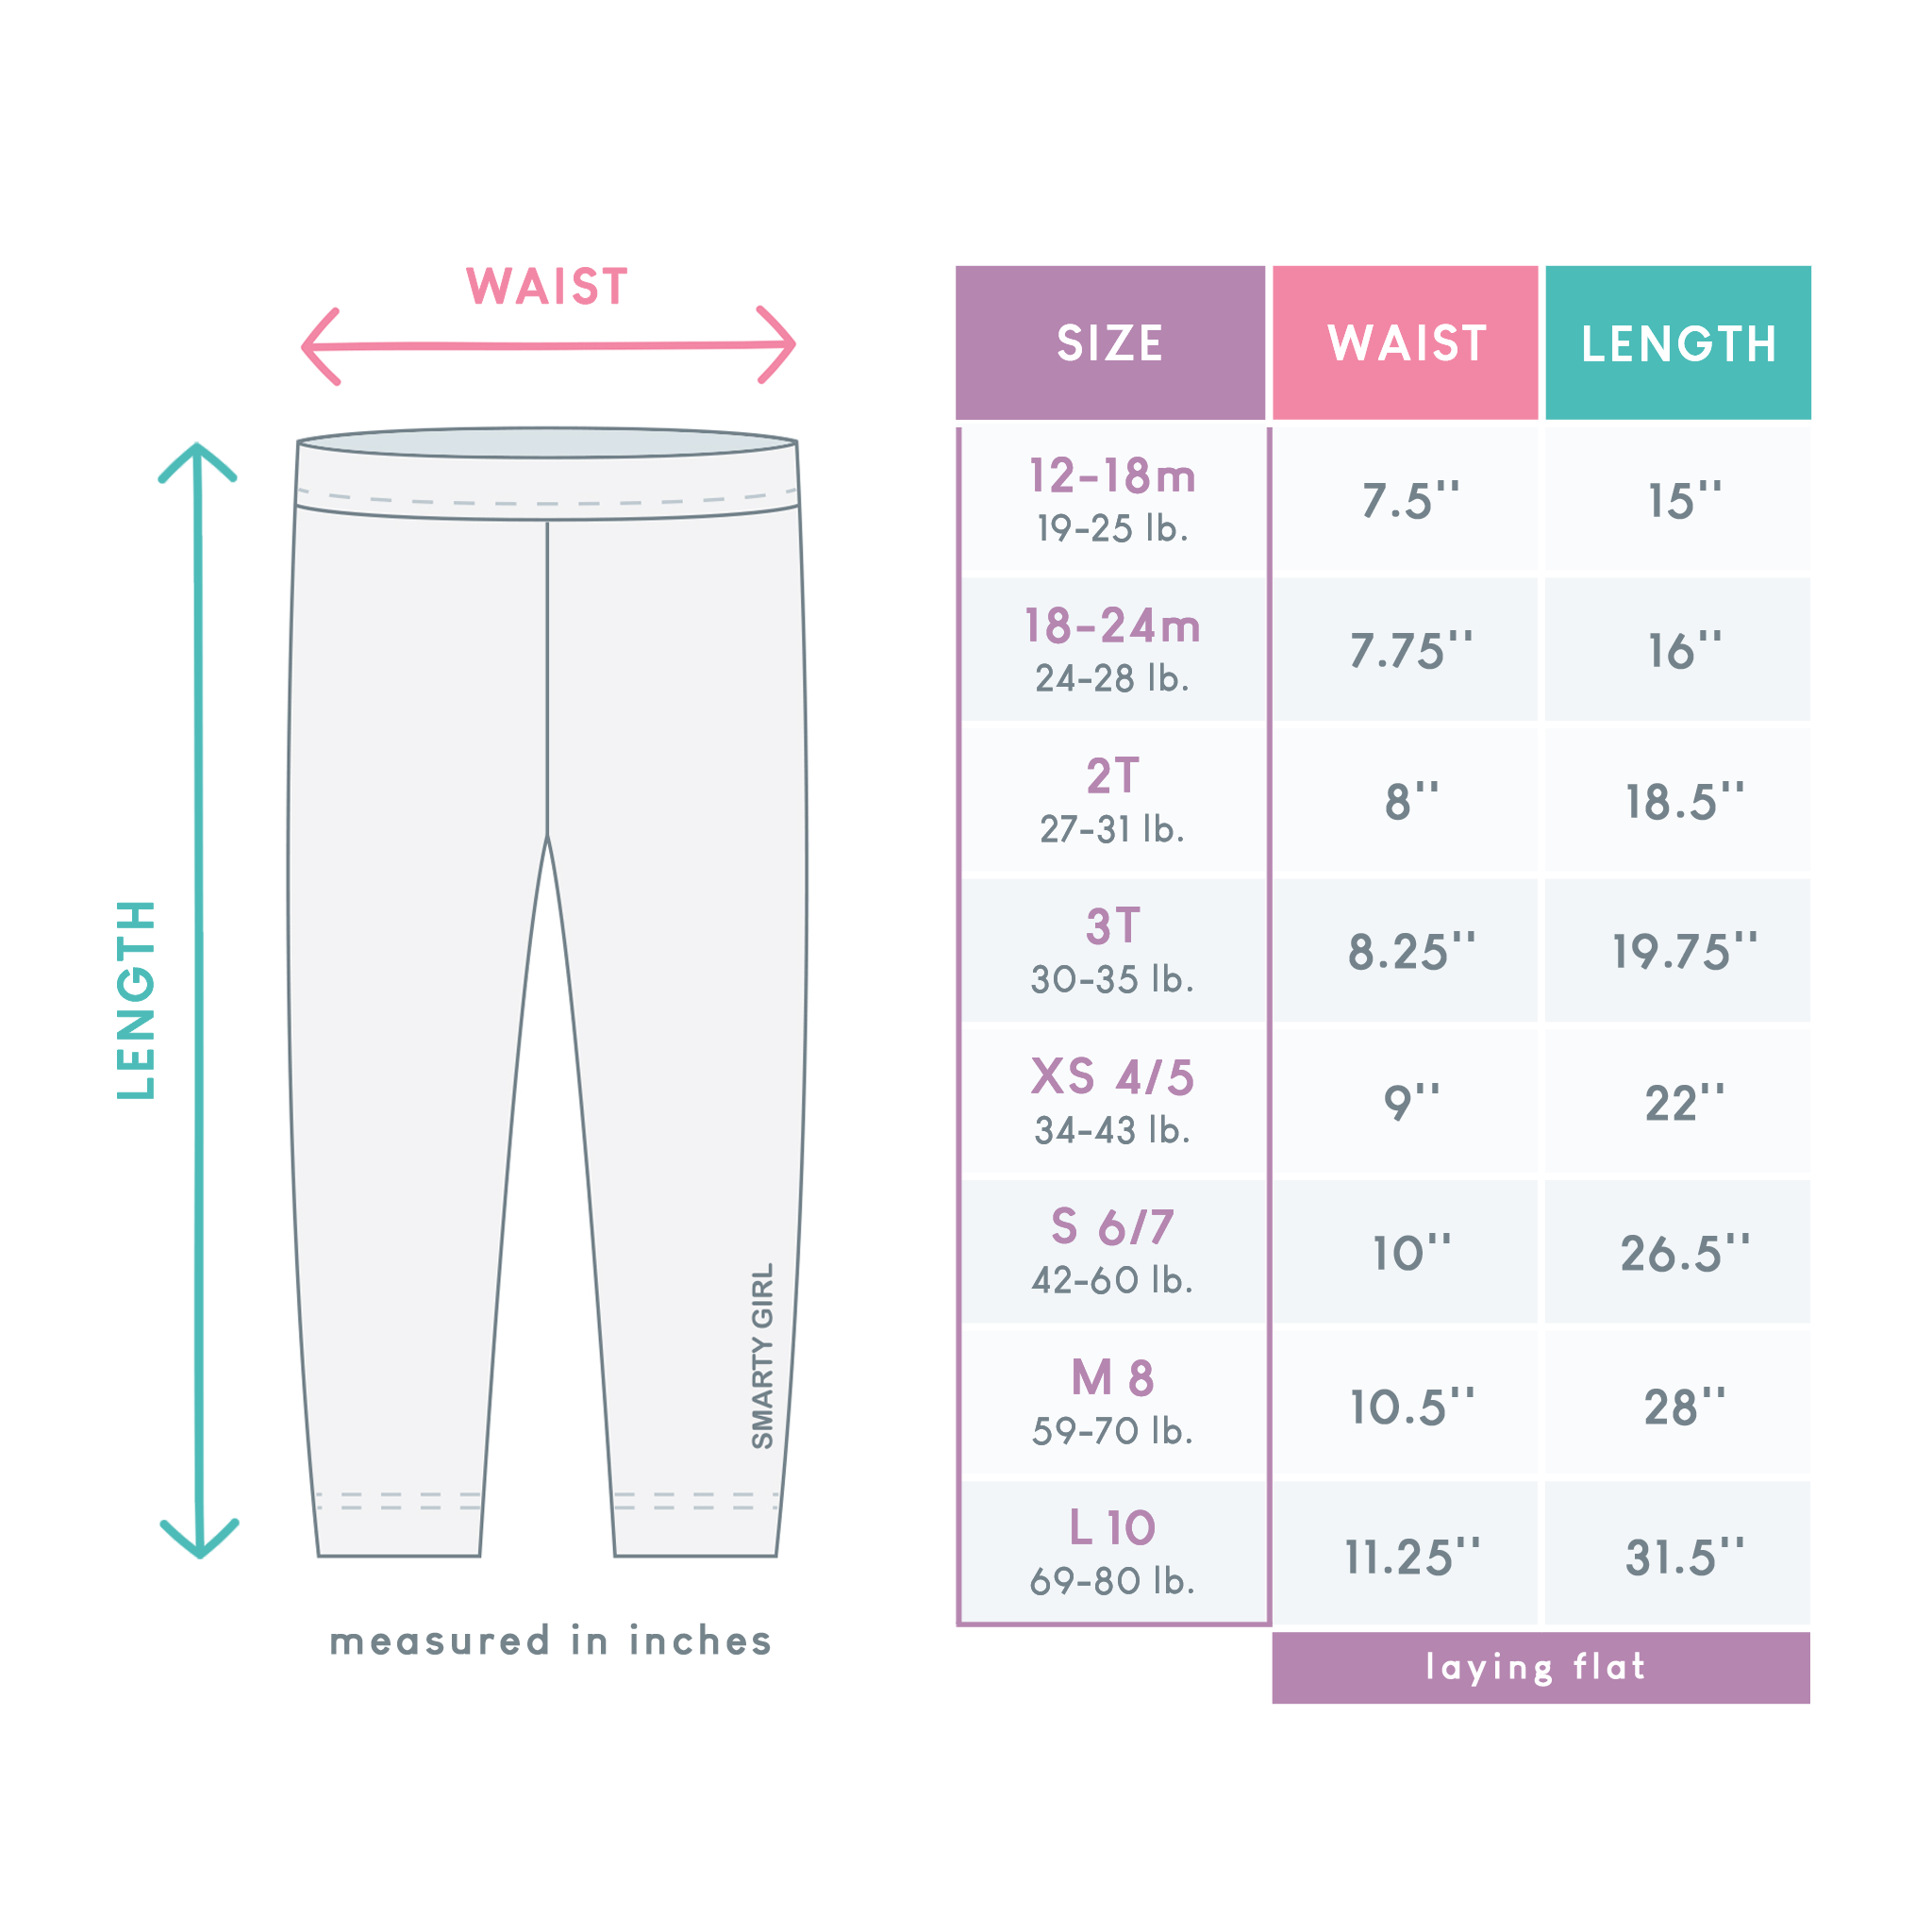 Smarty Girl leggings size chart sizes guide measurements science clothes for girls STEM clothing space pants astronaut astronauts sloth sloths narwhal narwhals whale whales robot robots shirt dress kids childrens child toddler birthday kid party theme gift costume smart geek nerd nerdy apparel geeky female empowerment brand line company baby